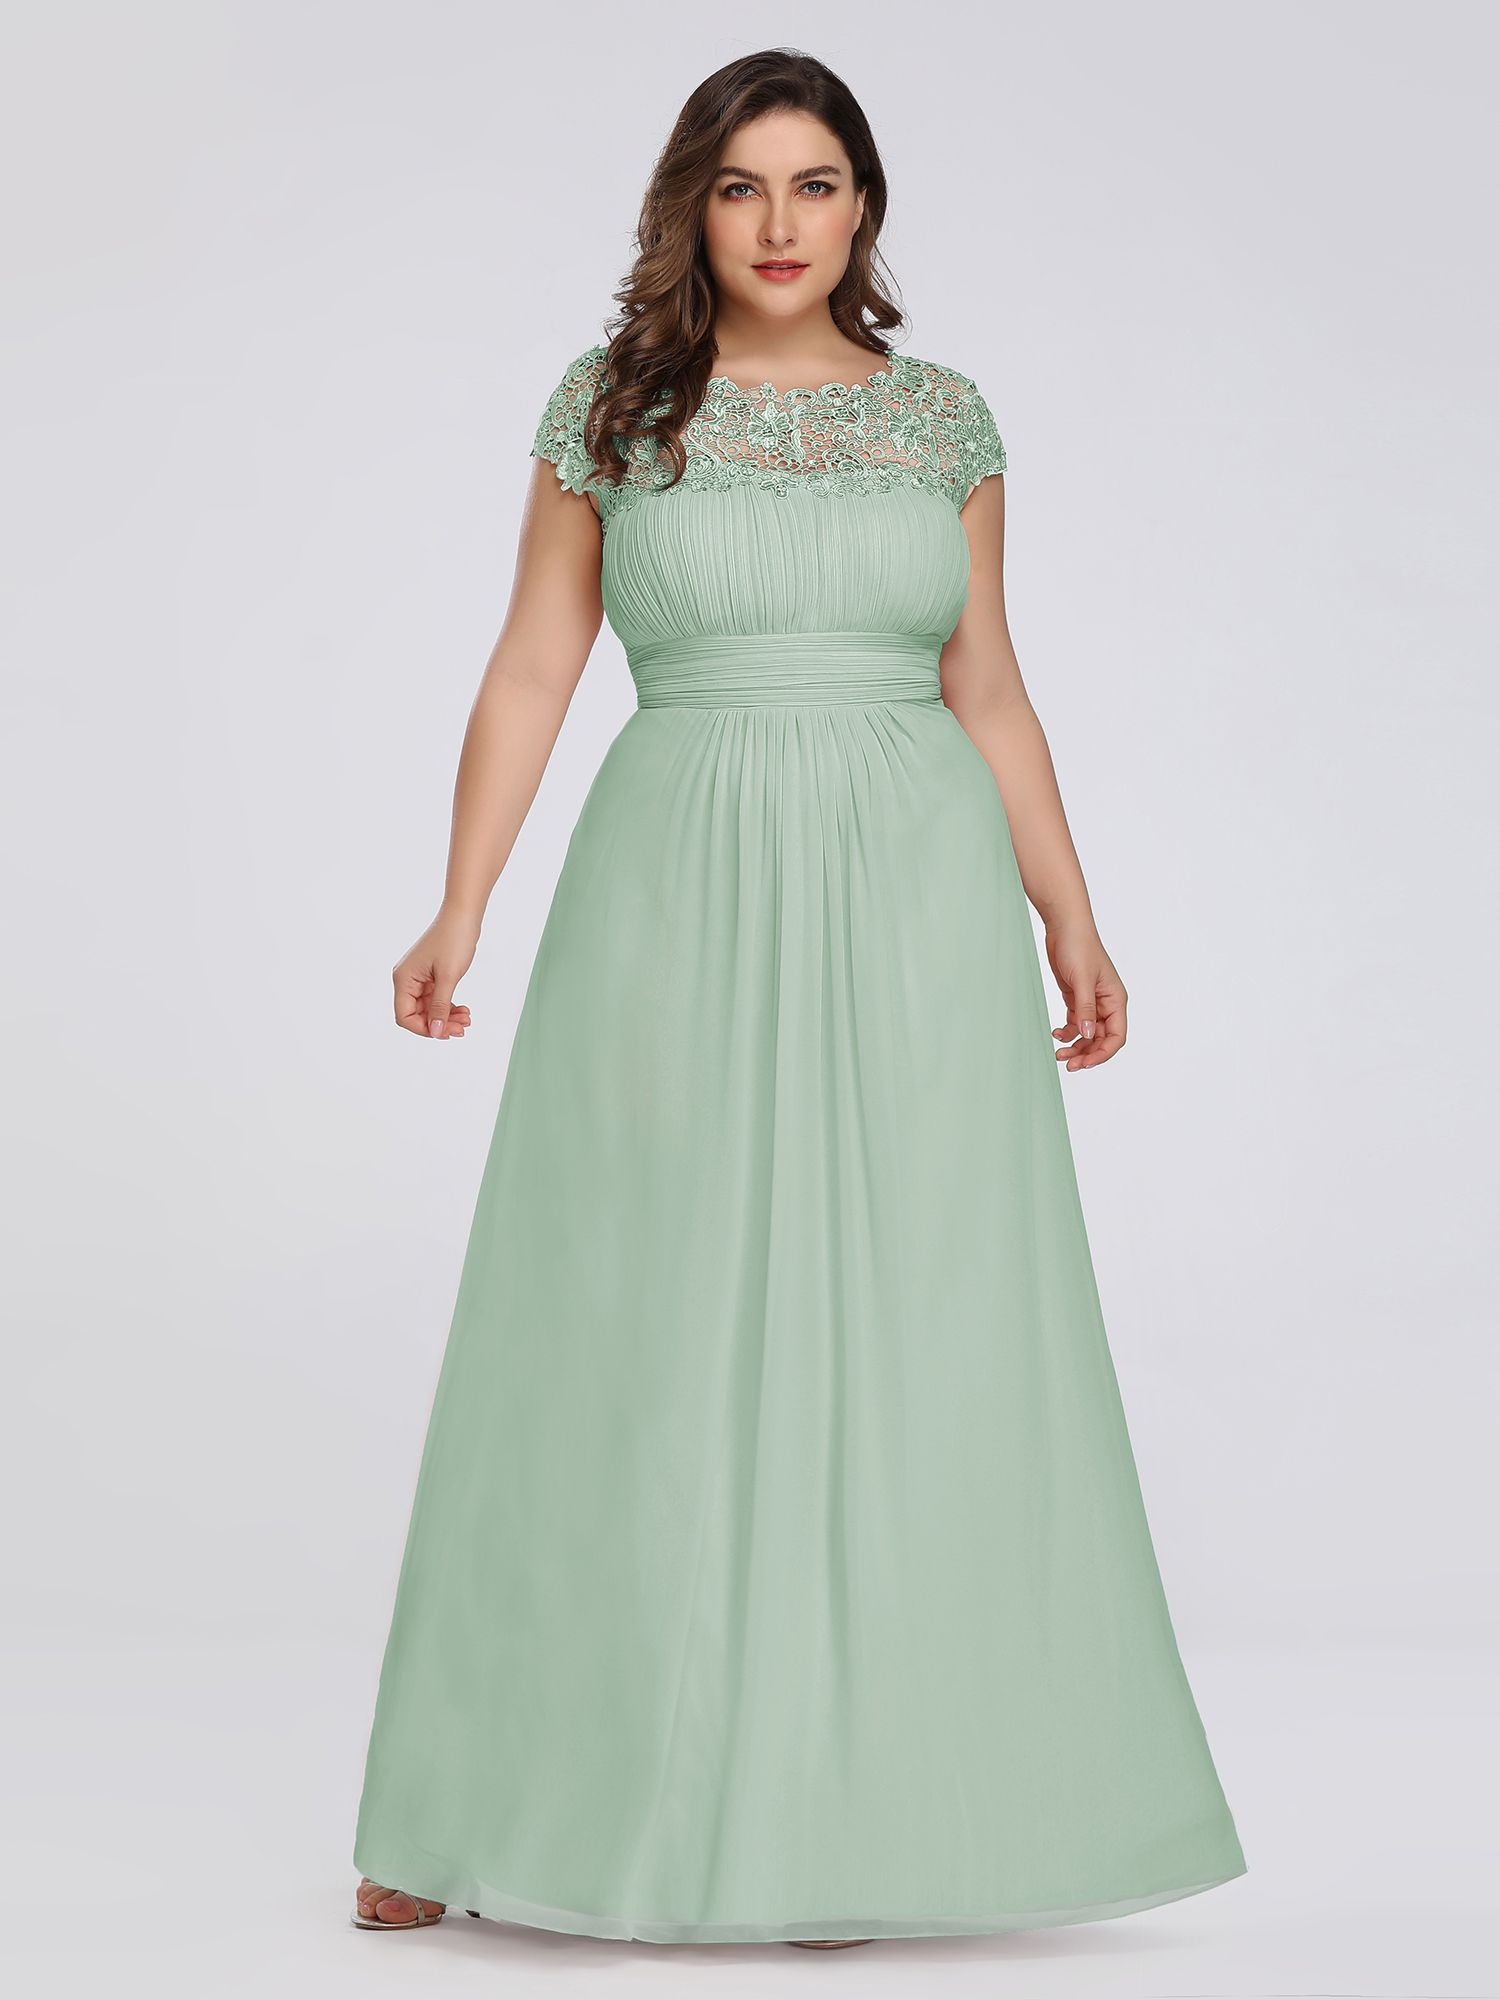 Ever Pretty Ever Pretty Womens Vintage Lace Mother Of The Bride Dresses For Women 99932 Mint Green Us4 Walmart Com Mint Bridesmaid Dresses Mint Green Bridesmaid Dresses Party Dresses For Women [ 2000 x 1500 Pixel ]